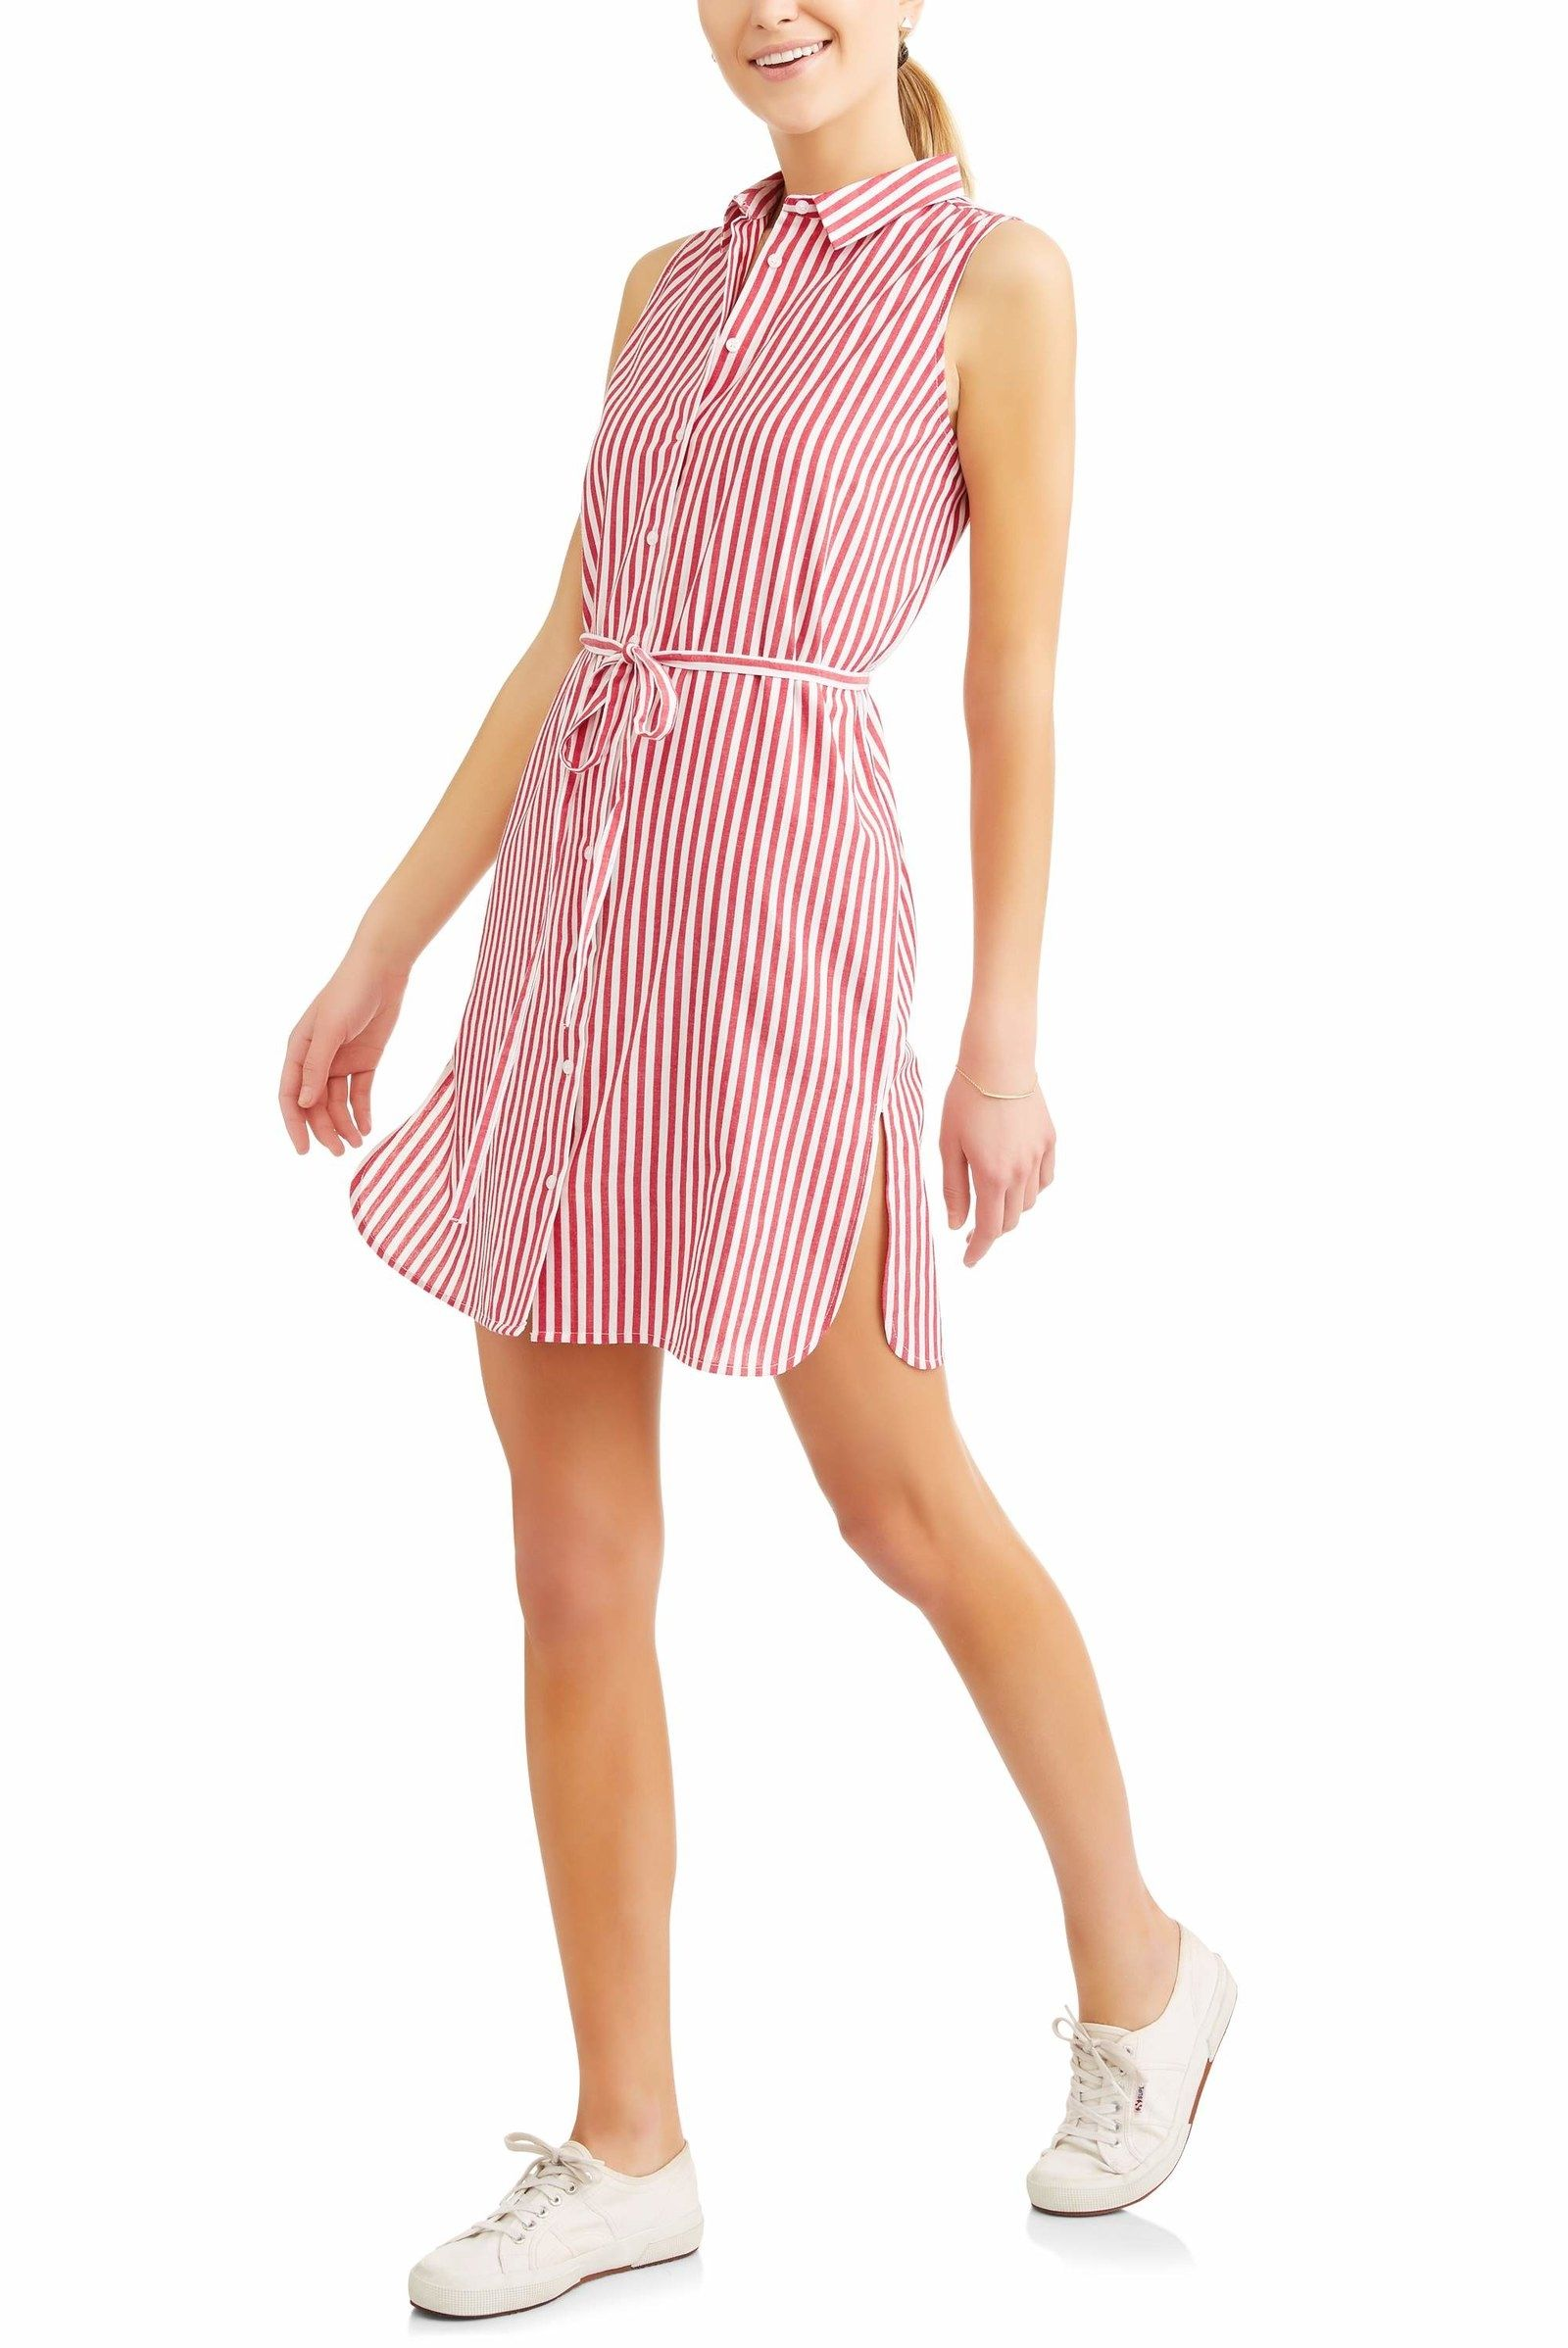 32be895649 ... you spelled cute dresses W-A-L-M-A-R-T  A striped shirtdress that ll  look great alone or even layered over a pair of jeans for that classic  tunic look.